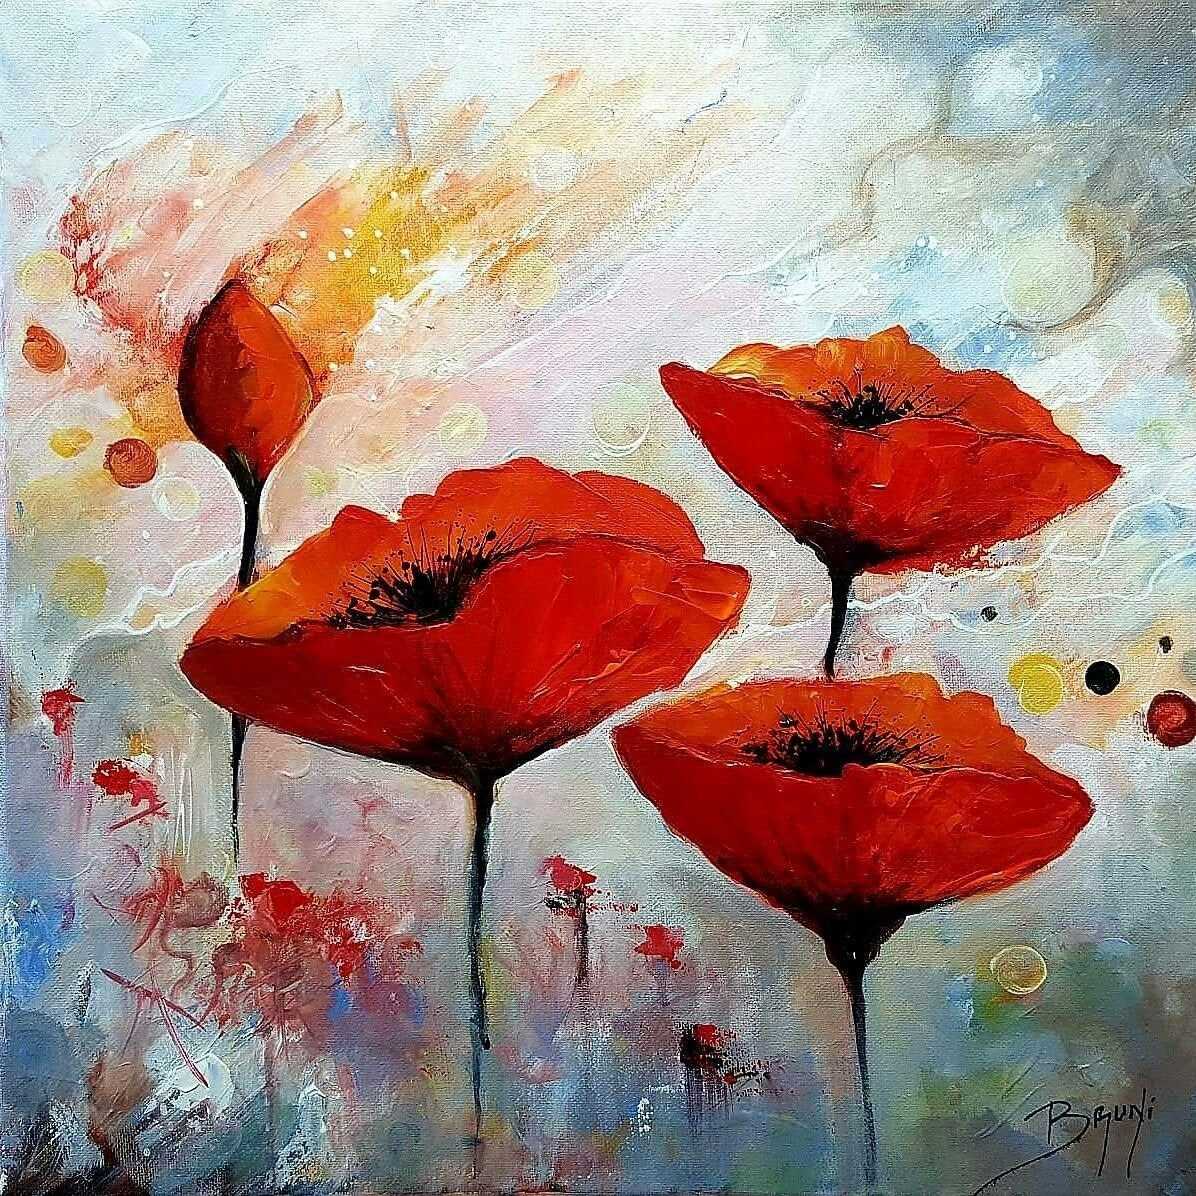 Les Pavots Artiste Eric Bruni Etsy In 2020 Poppy Painting Painting Art